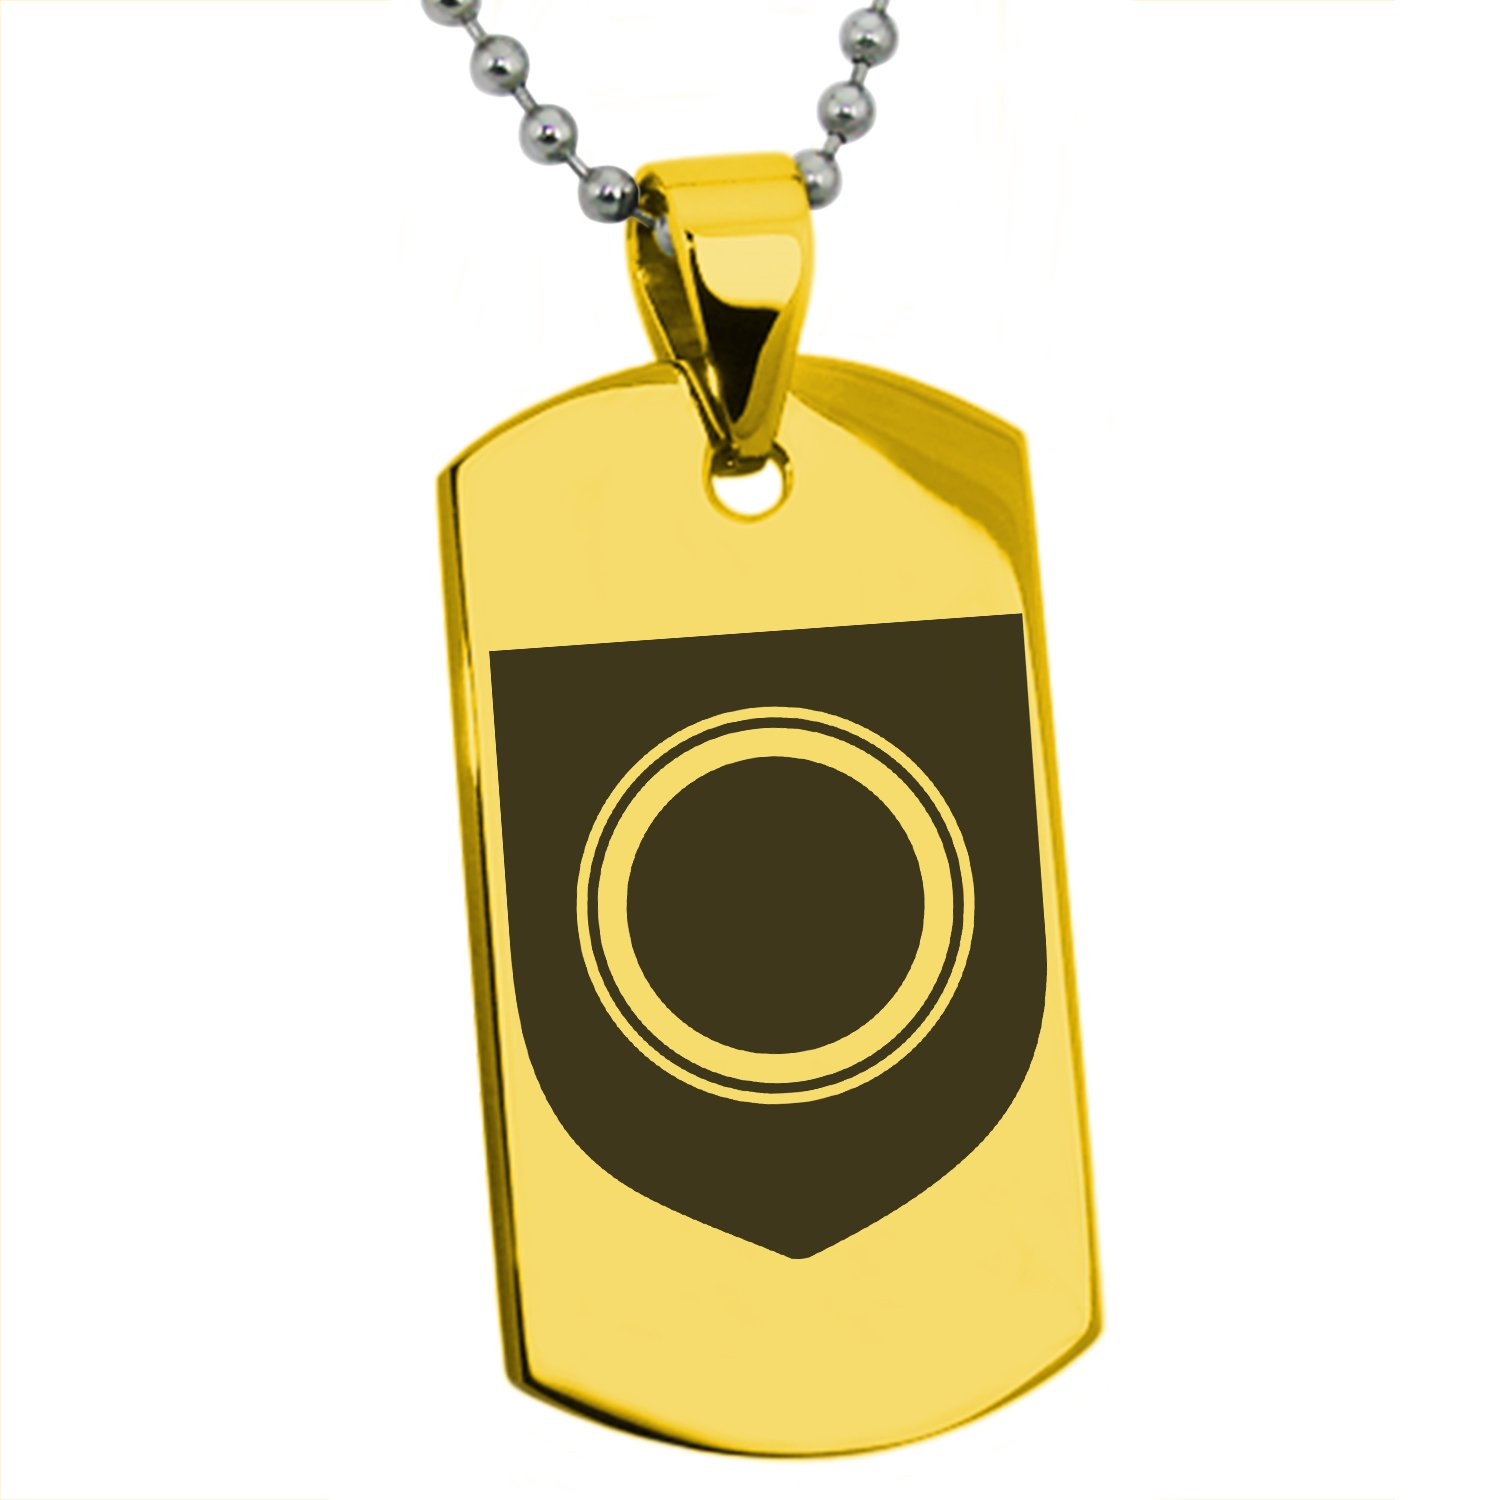 Tioneer Gold Plated Stainless Steel Annulet Fidelity Coat of Arms Shield Symbol Engraved Dog Tag Pendant Necklace